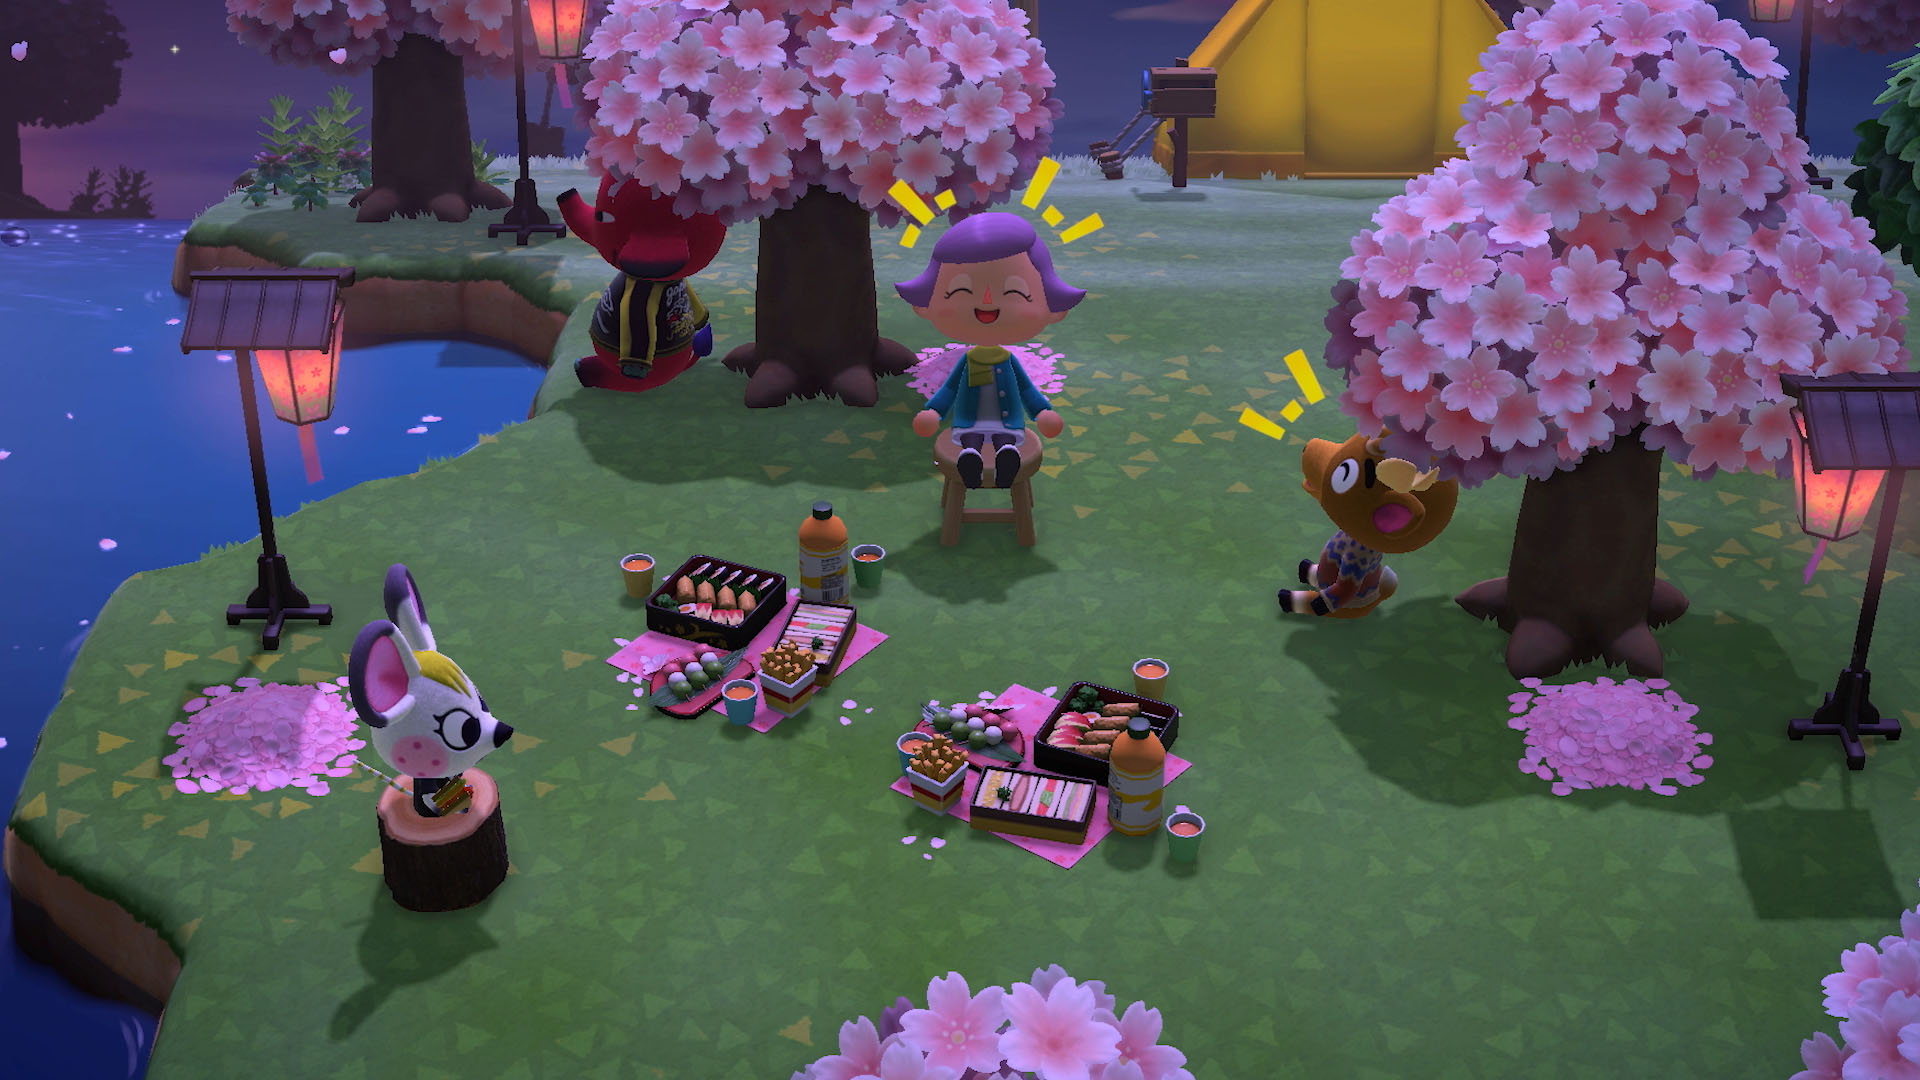 How To Kick Villagers Out Animal Crossing New Horizons Shacknews